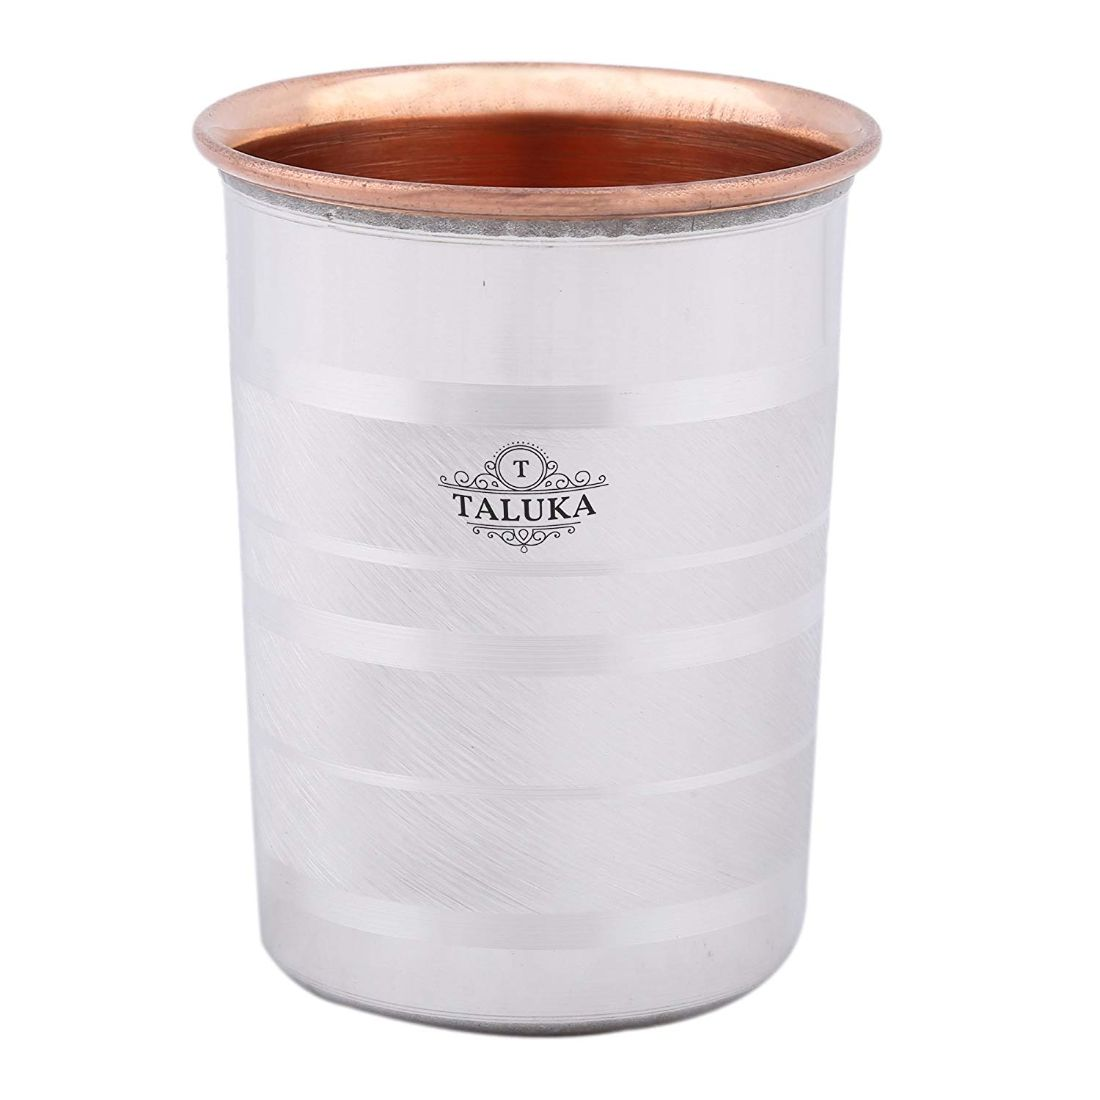 Stainless Steel Copper Jug 2000 ML For Drinking Water With 1 Steel Bottle and 1 Steel Copper Glass 350 ML Water Storage